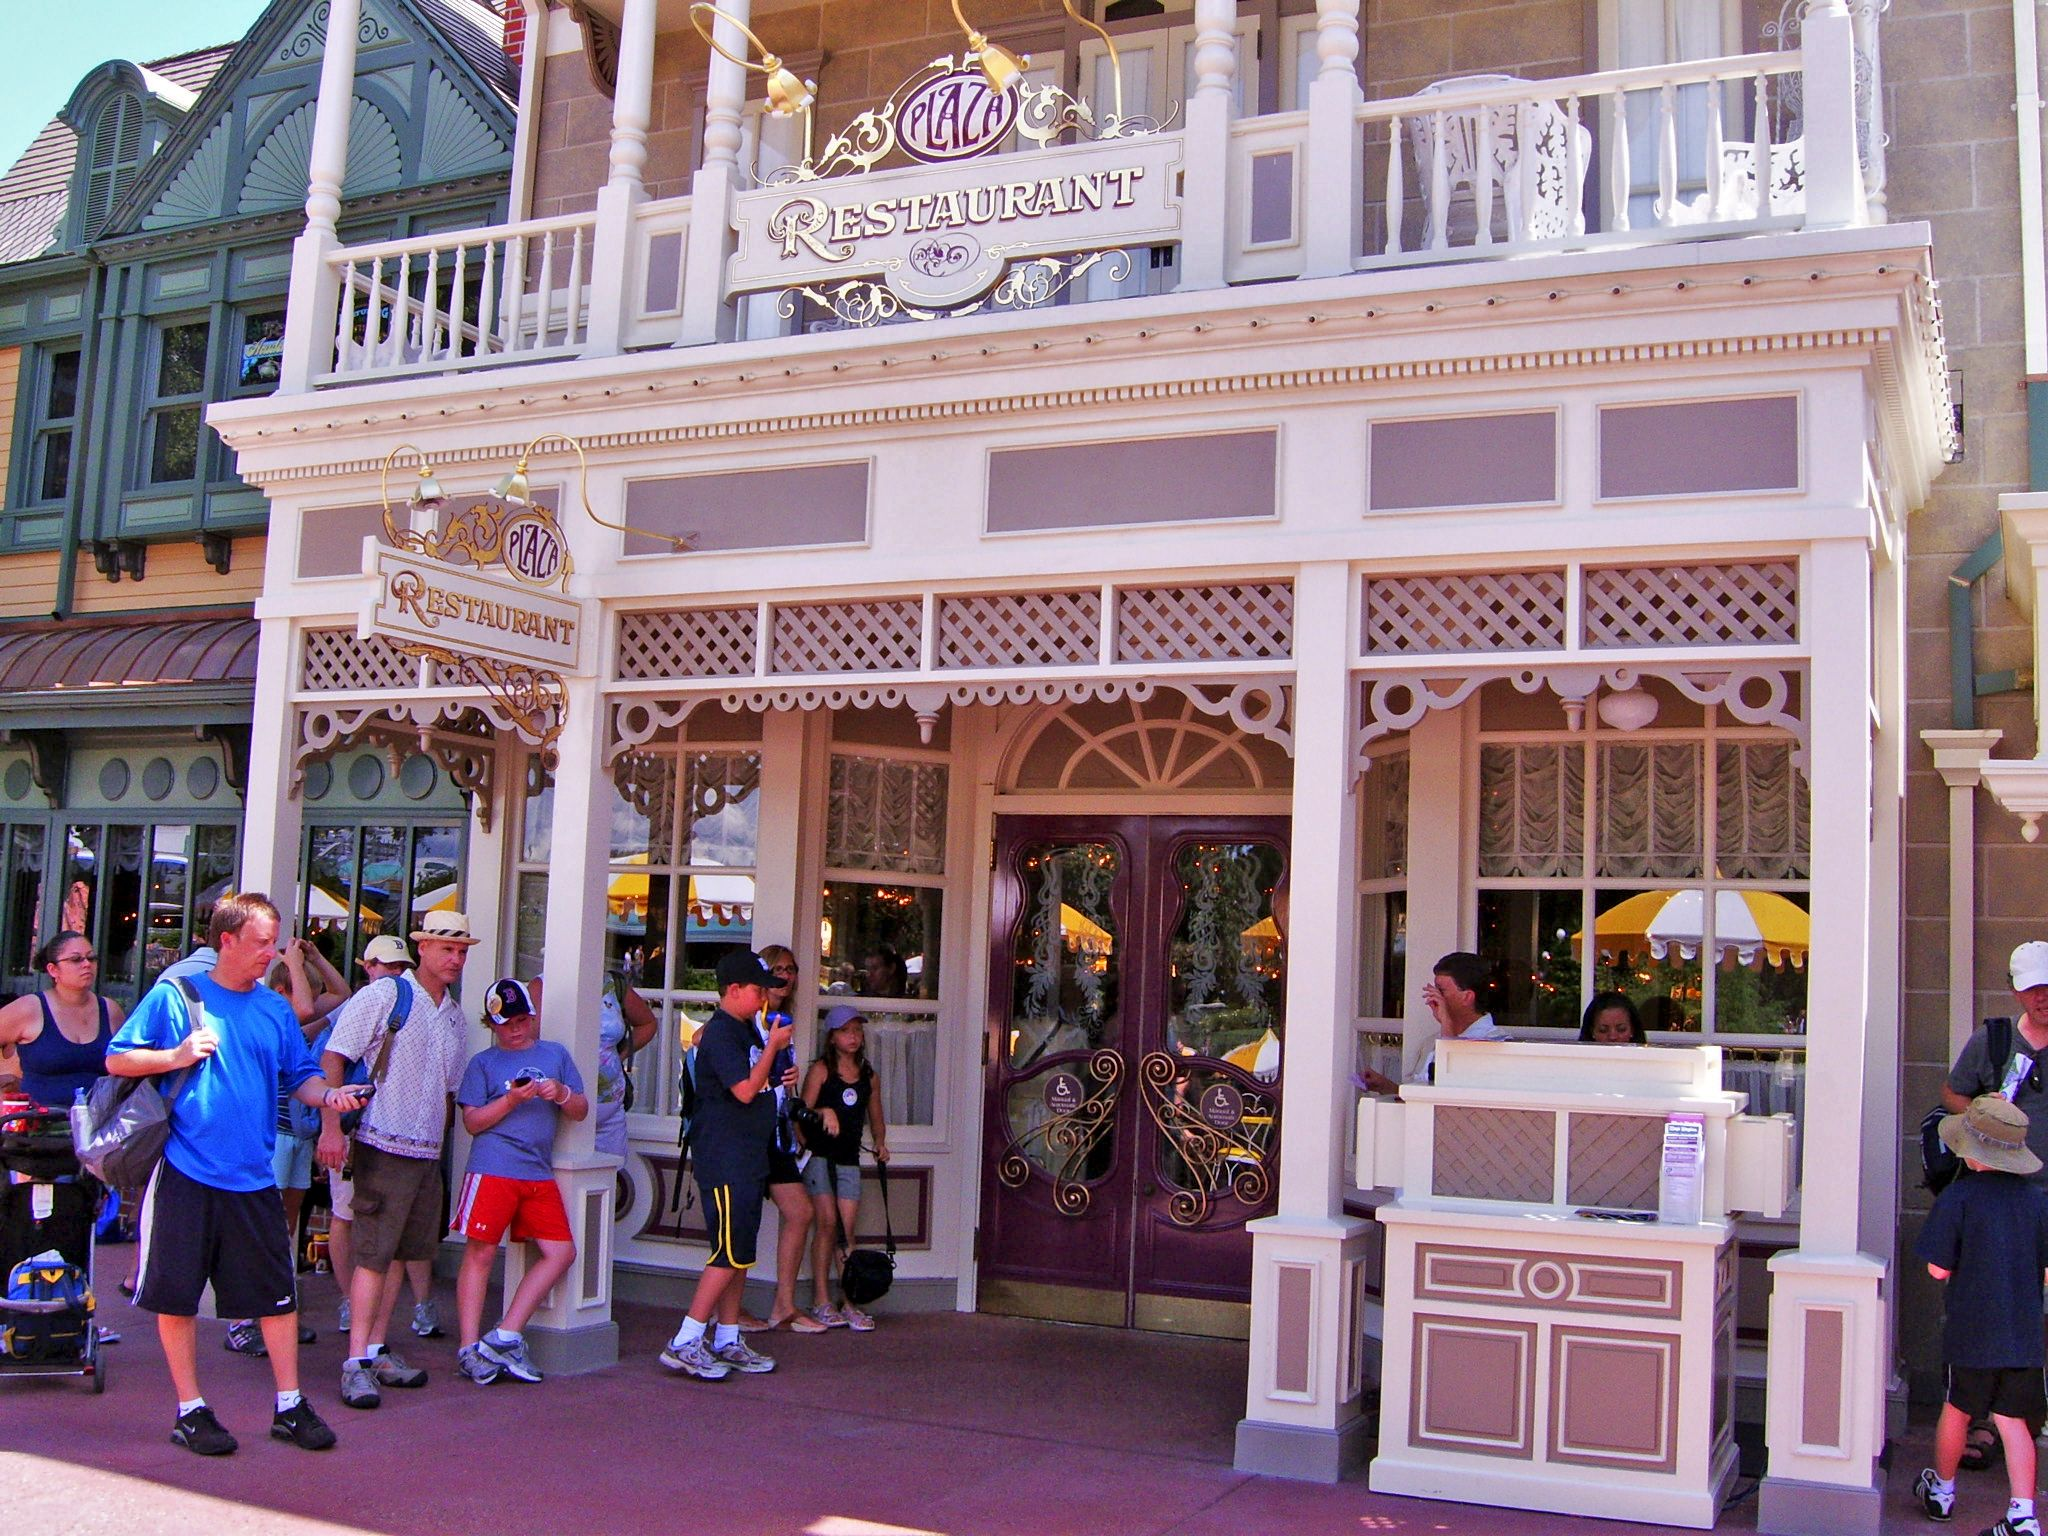 Restaurants Wdw Around The World Plaza Restaurant Facts